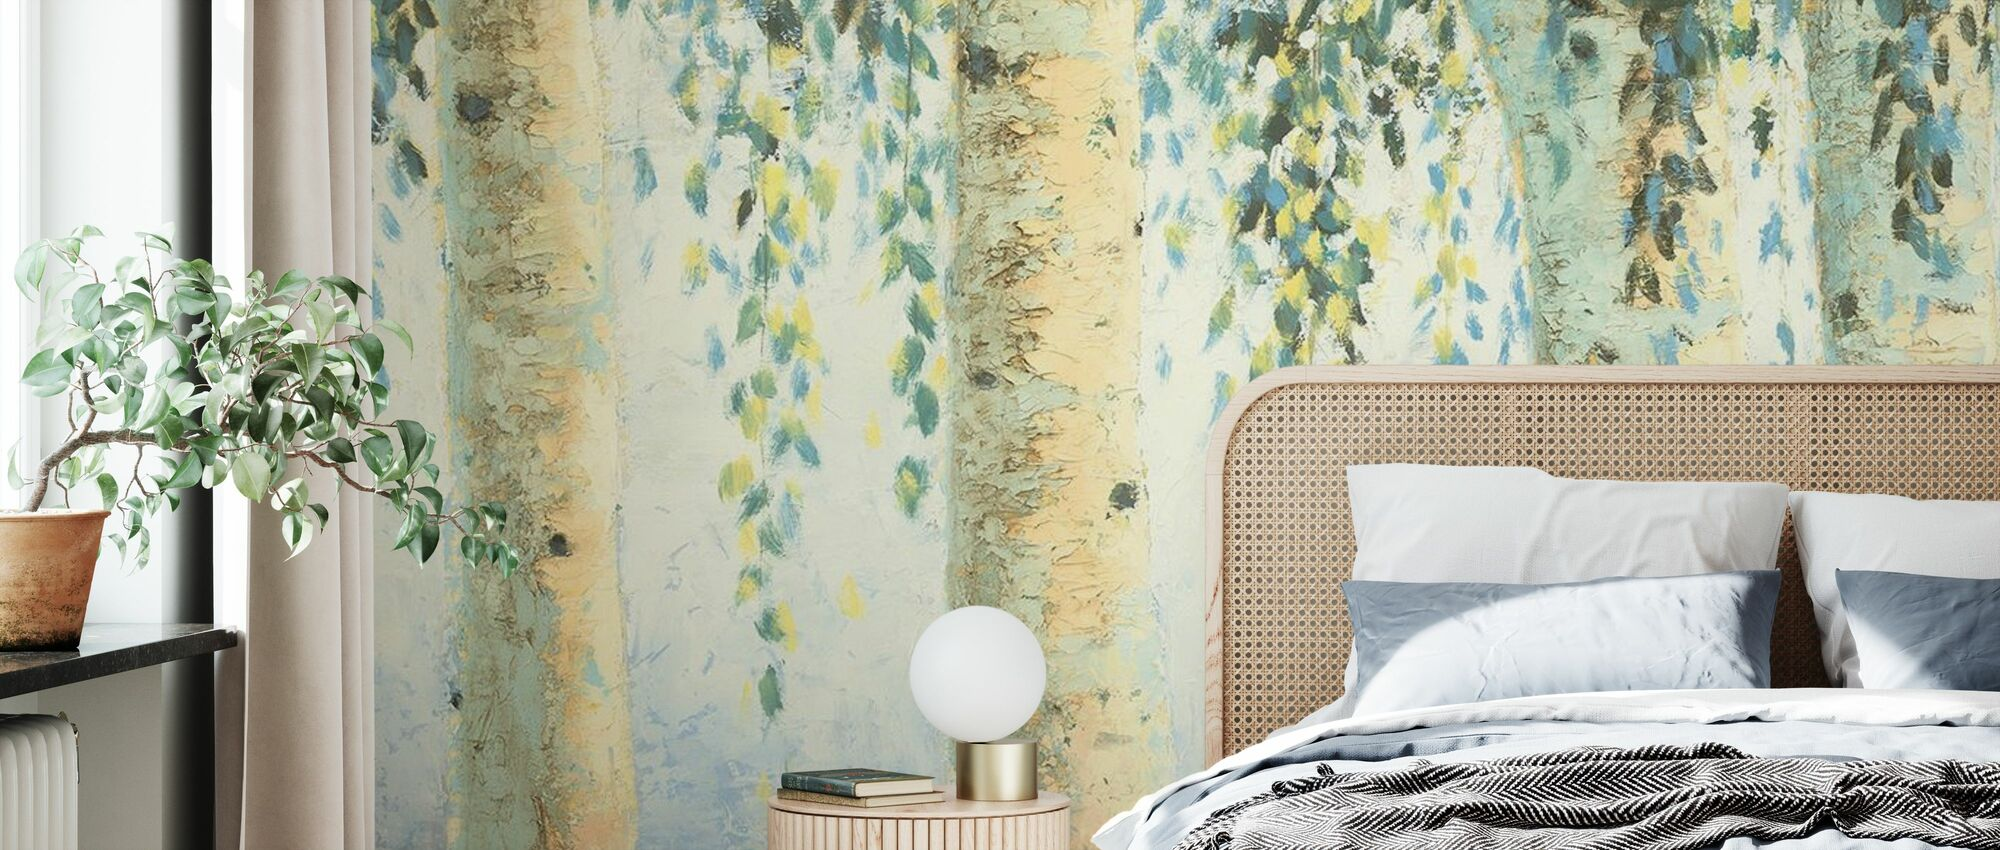 Sweeping Branches - Wallpaper - Bedroom